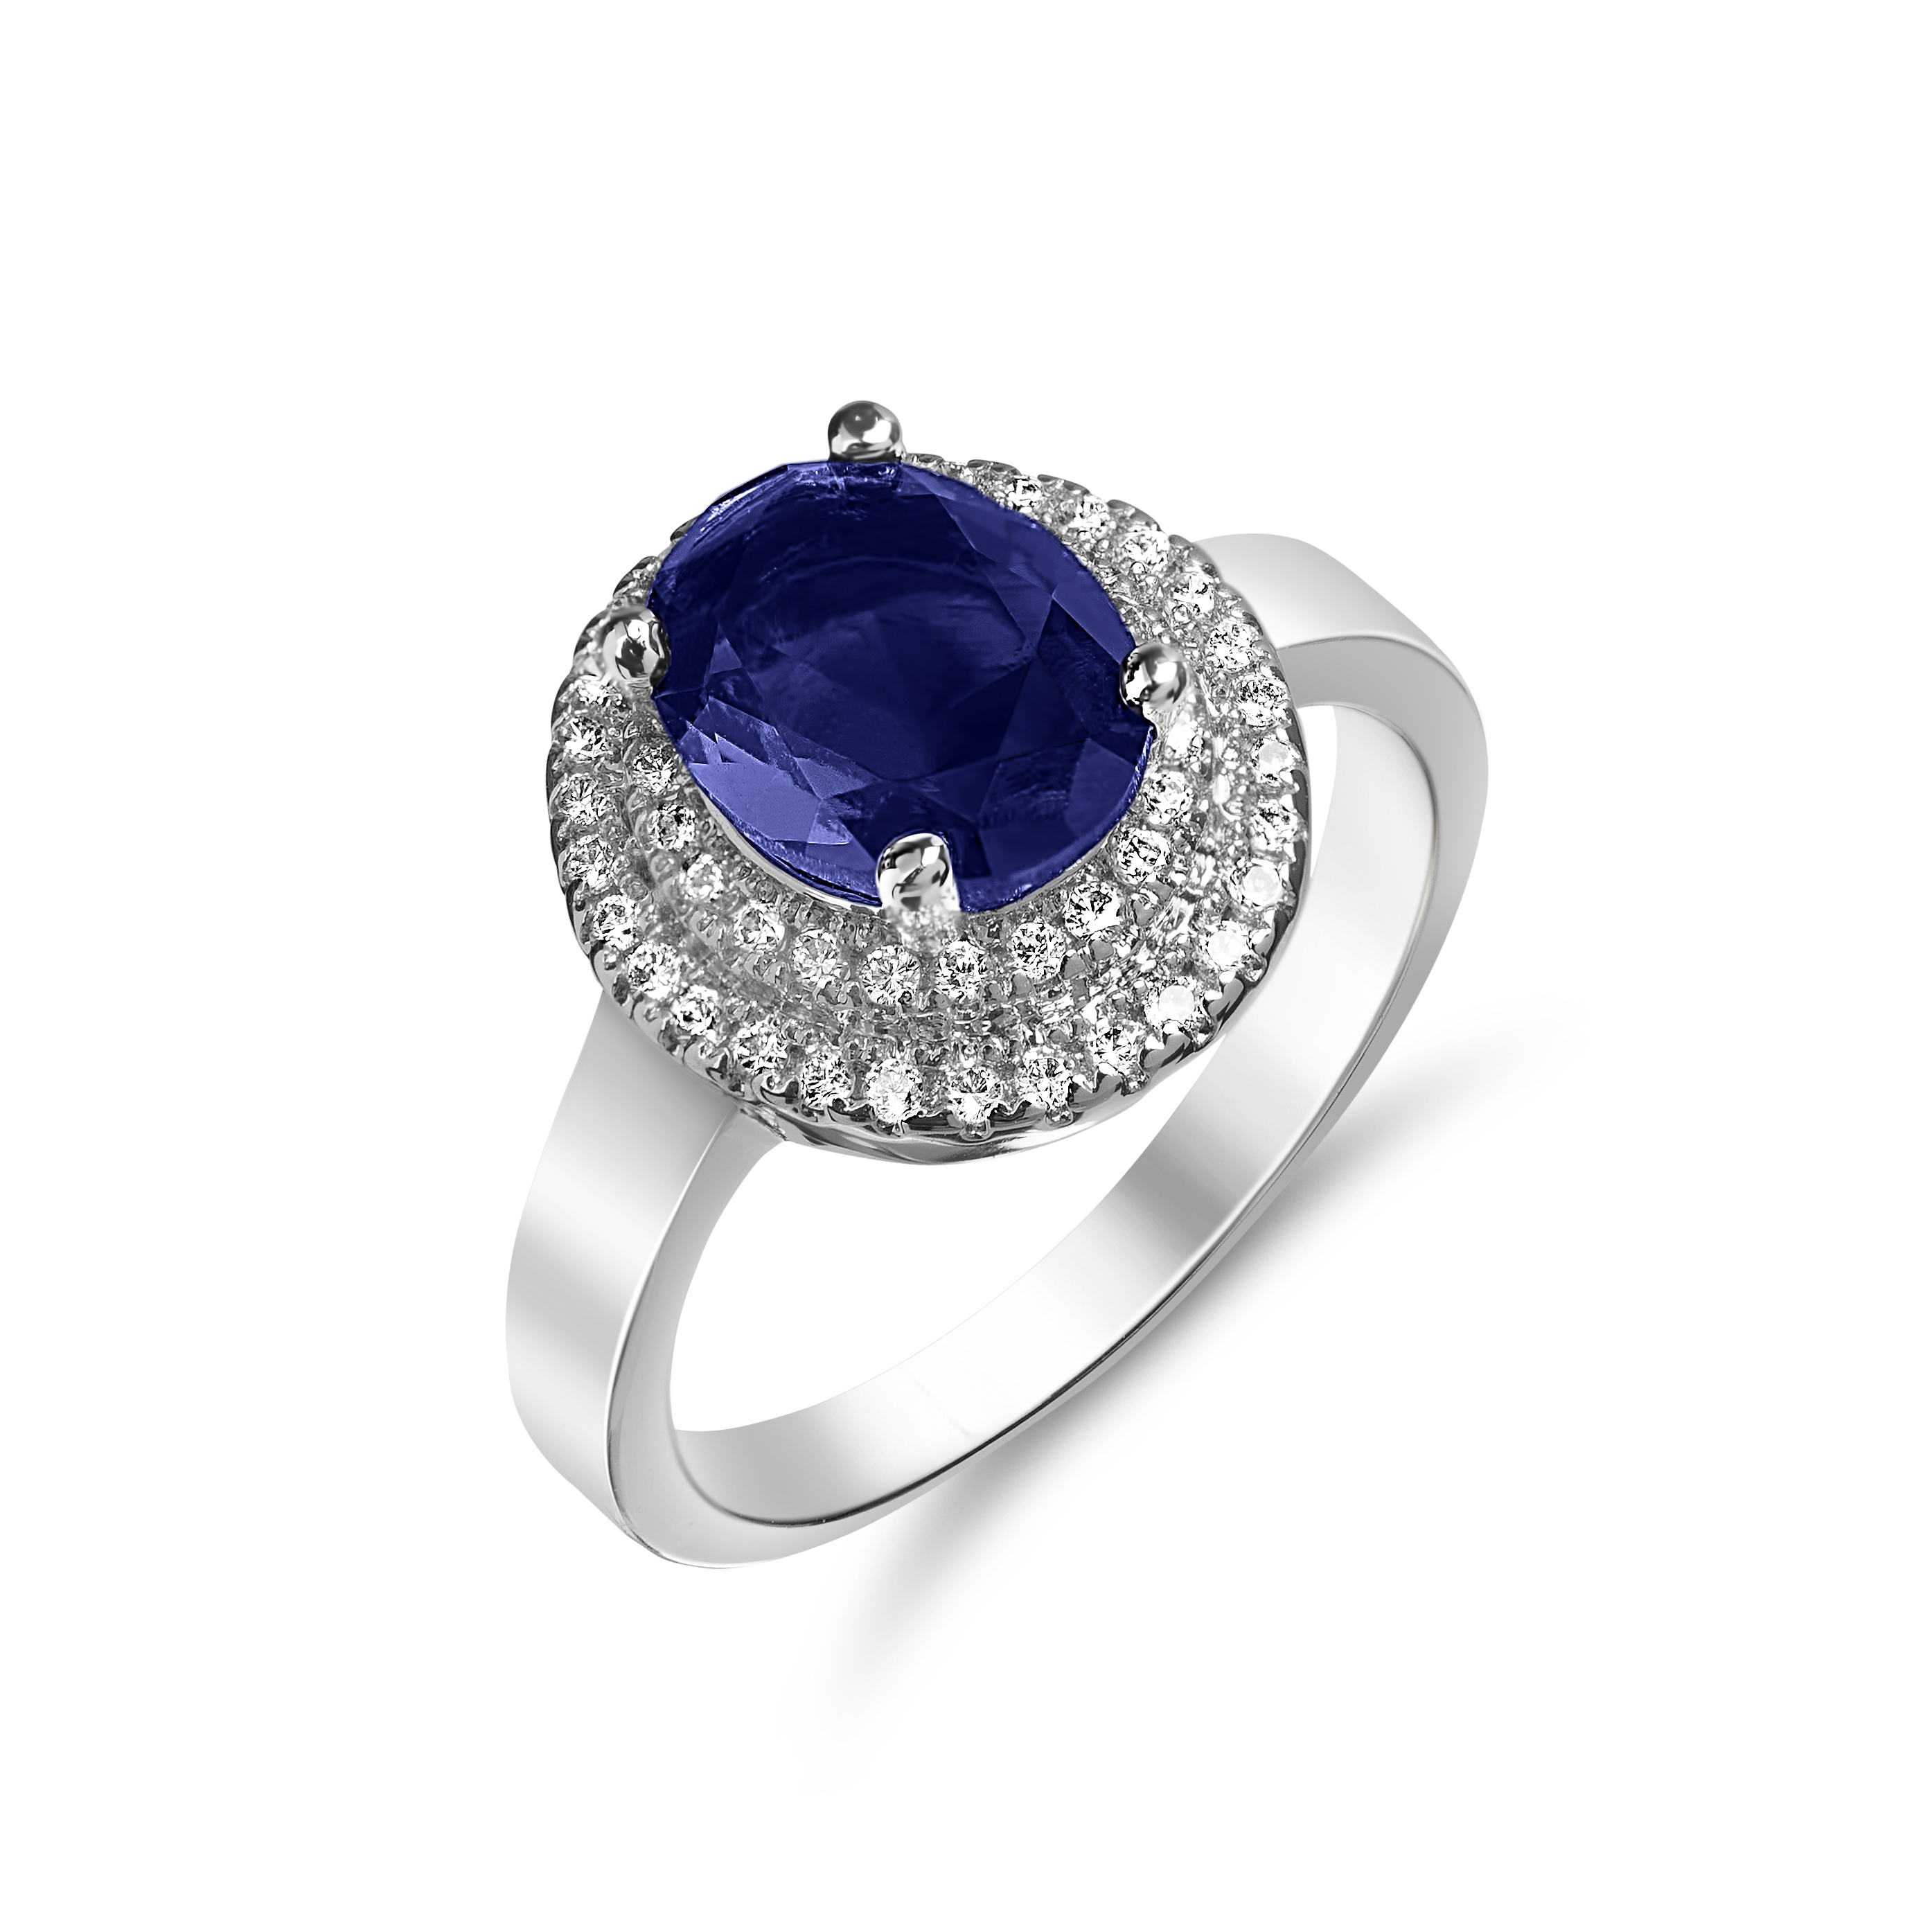 ring jewelers portfolio eng engagement gray saffire image sapphire larger view items saphire rings grey skylight